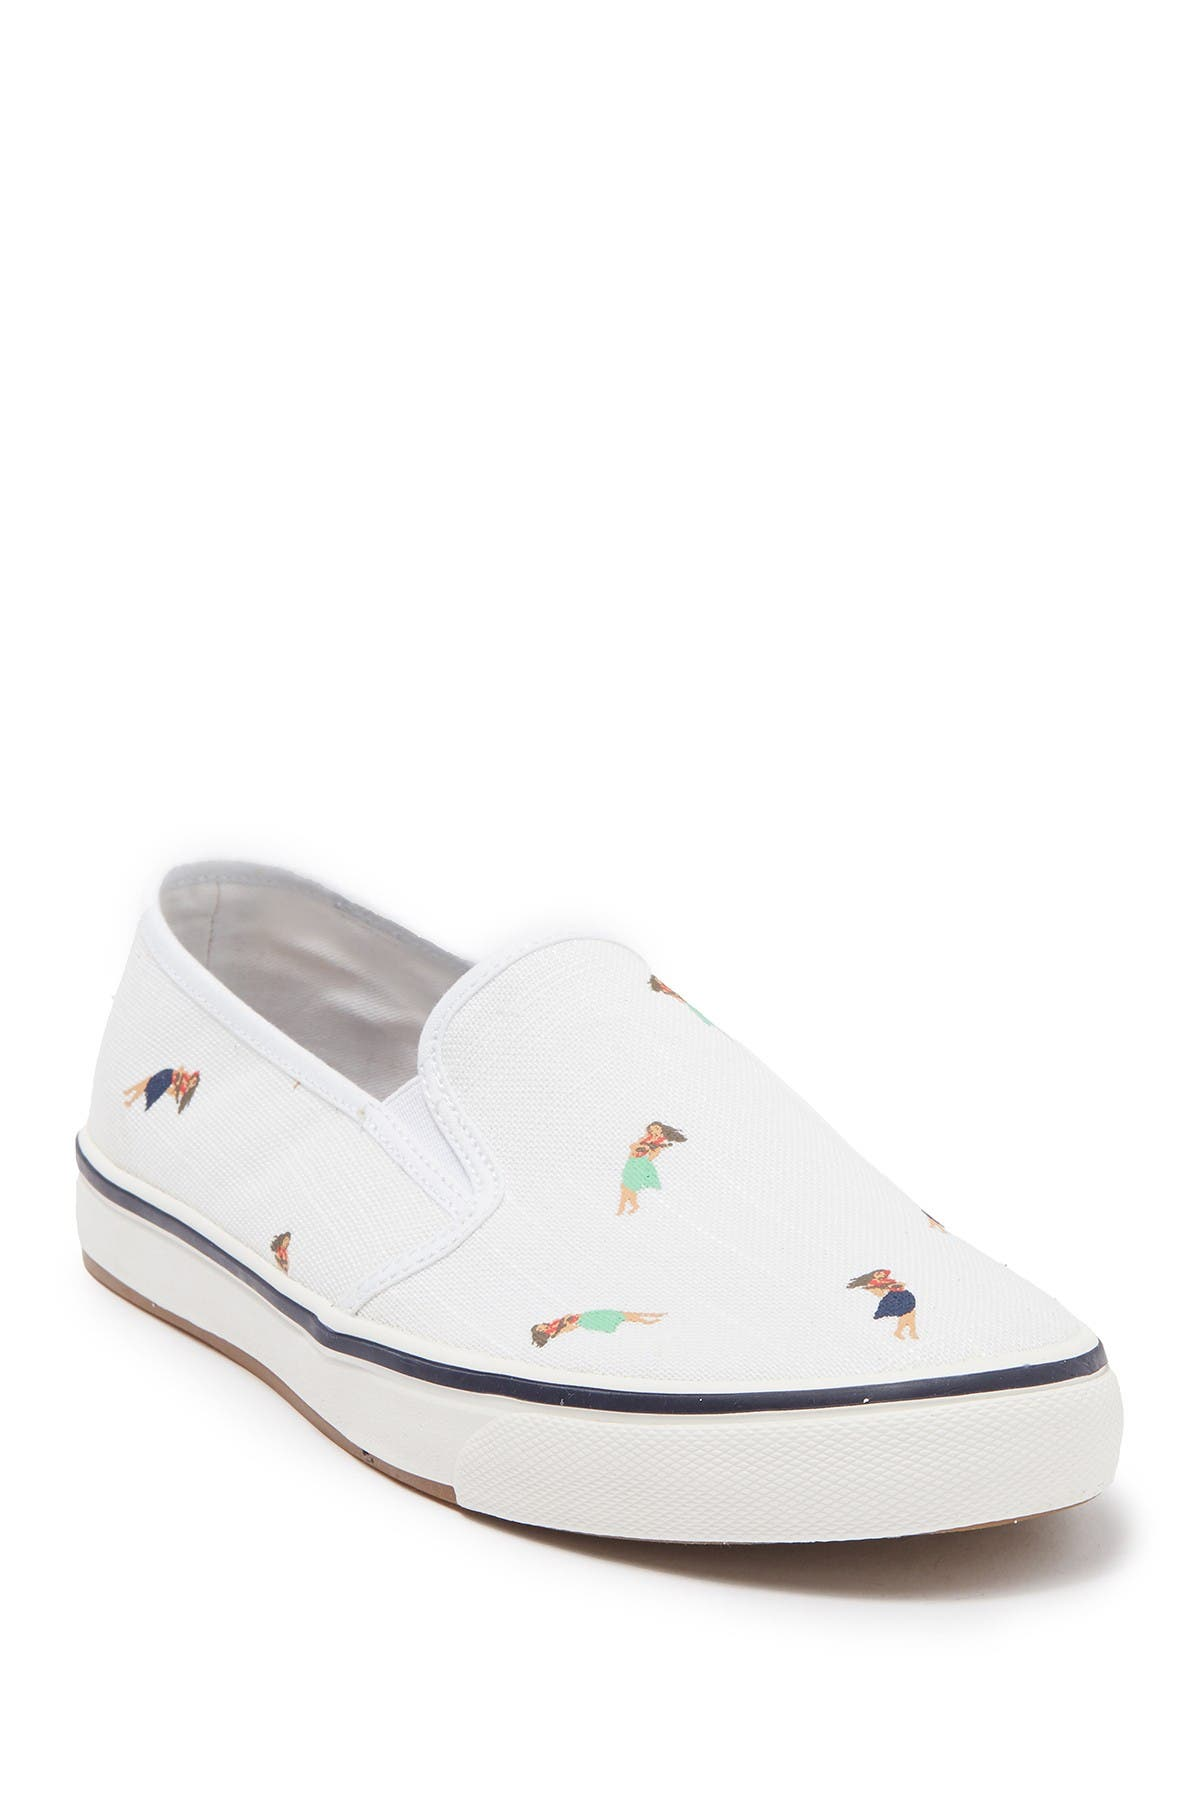 Image of Tommy Bahama Pascale Hula Dancer Slip-On Sneaker